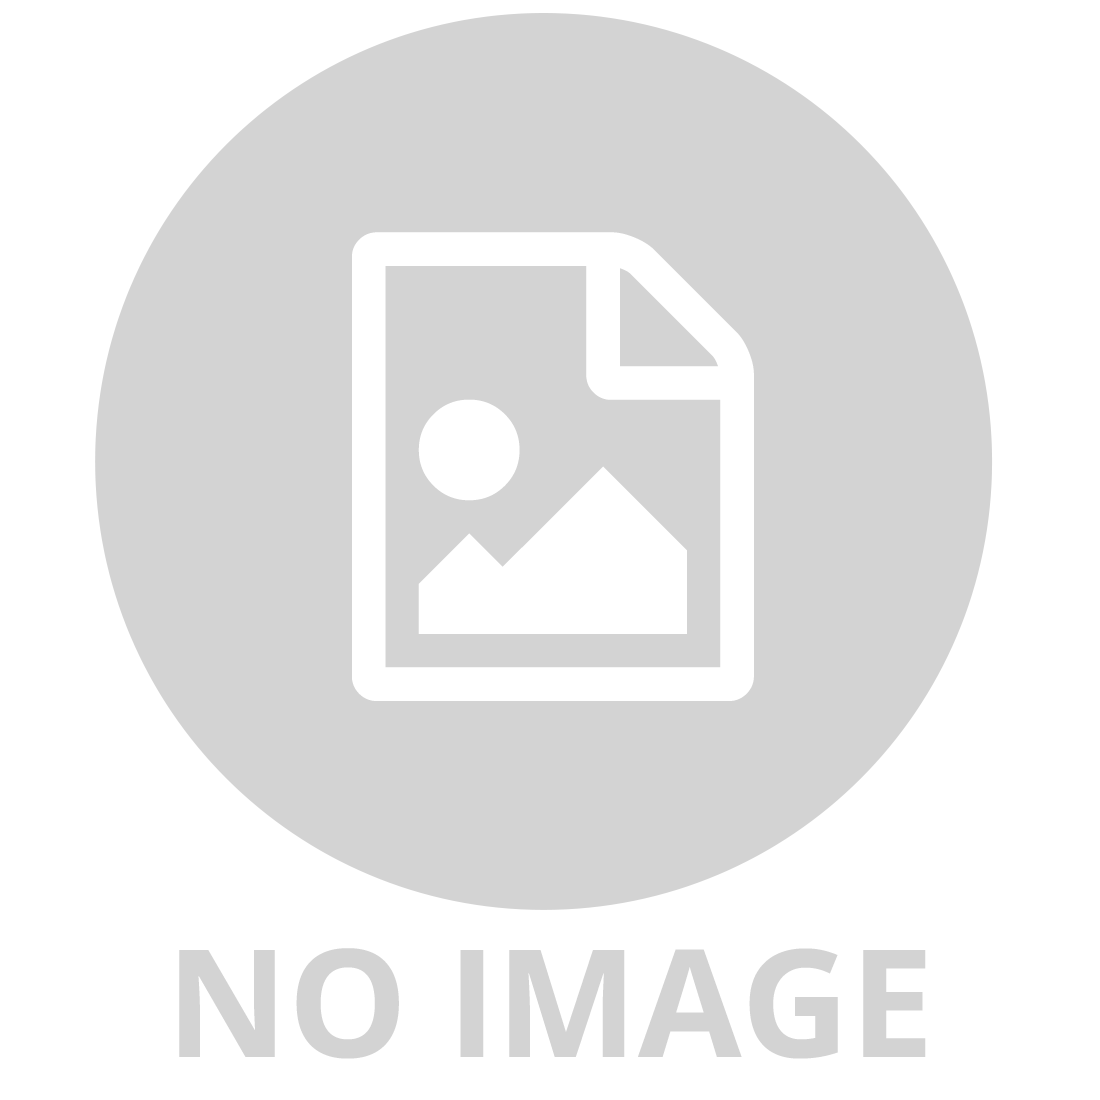 COLORIFIC FACE ART FACE CRAYONS